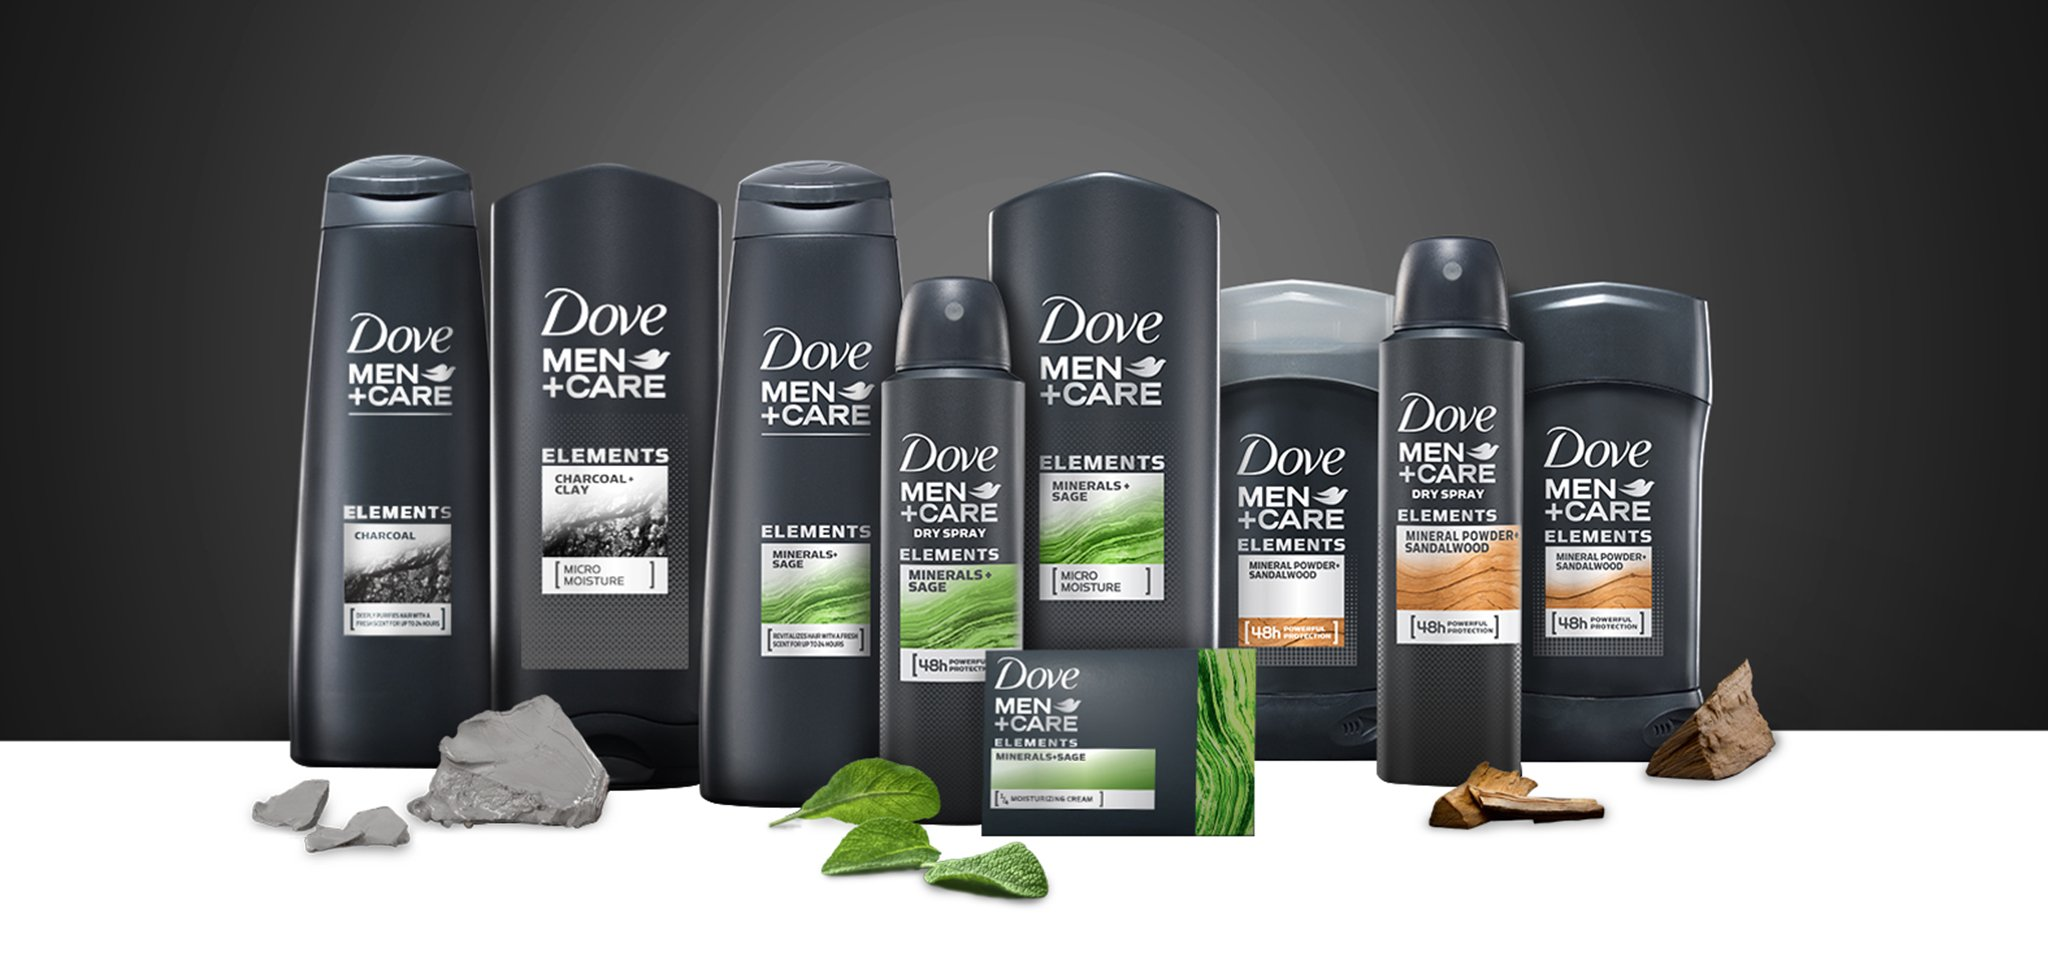 Dove Men+Care Introduces New Elements Range Inspired By Nature